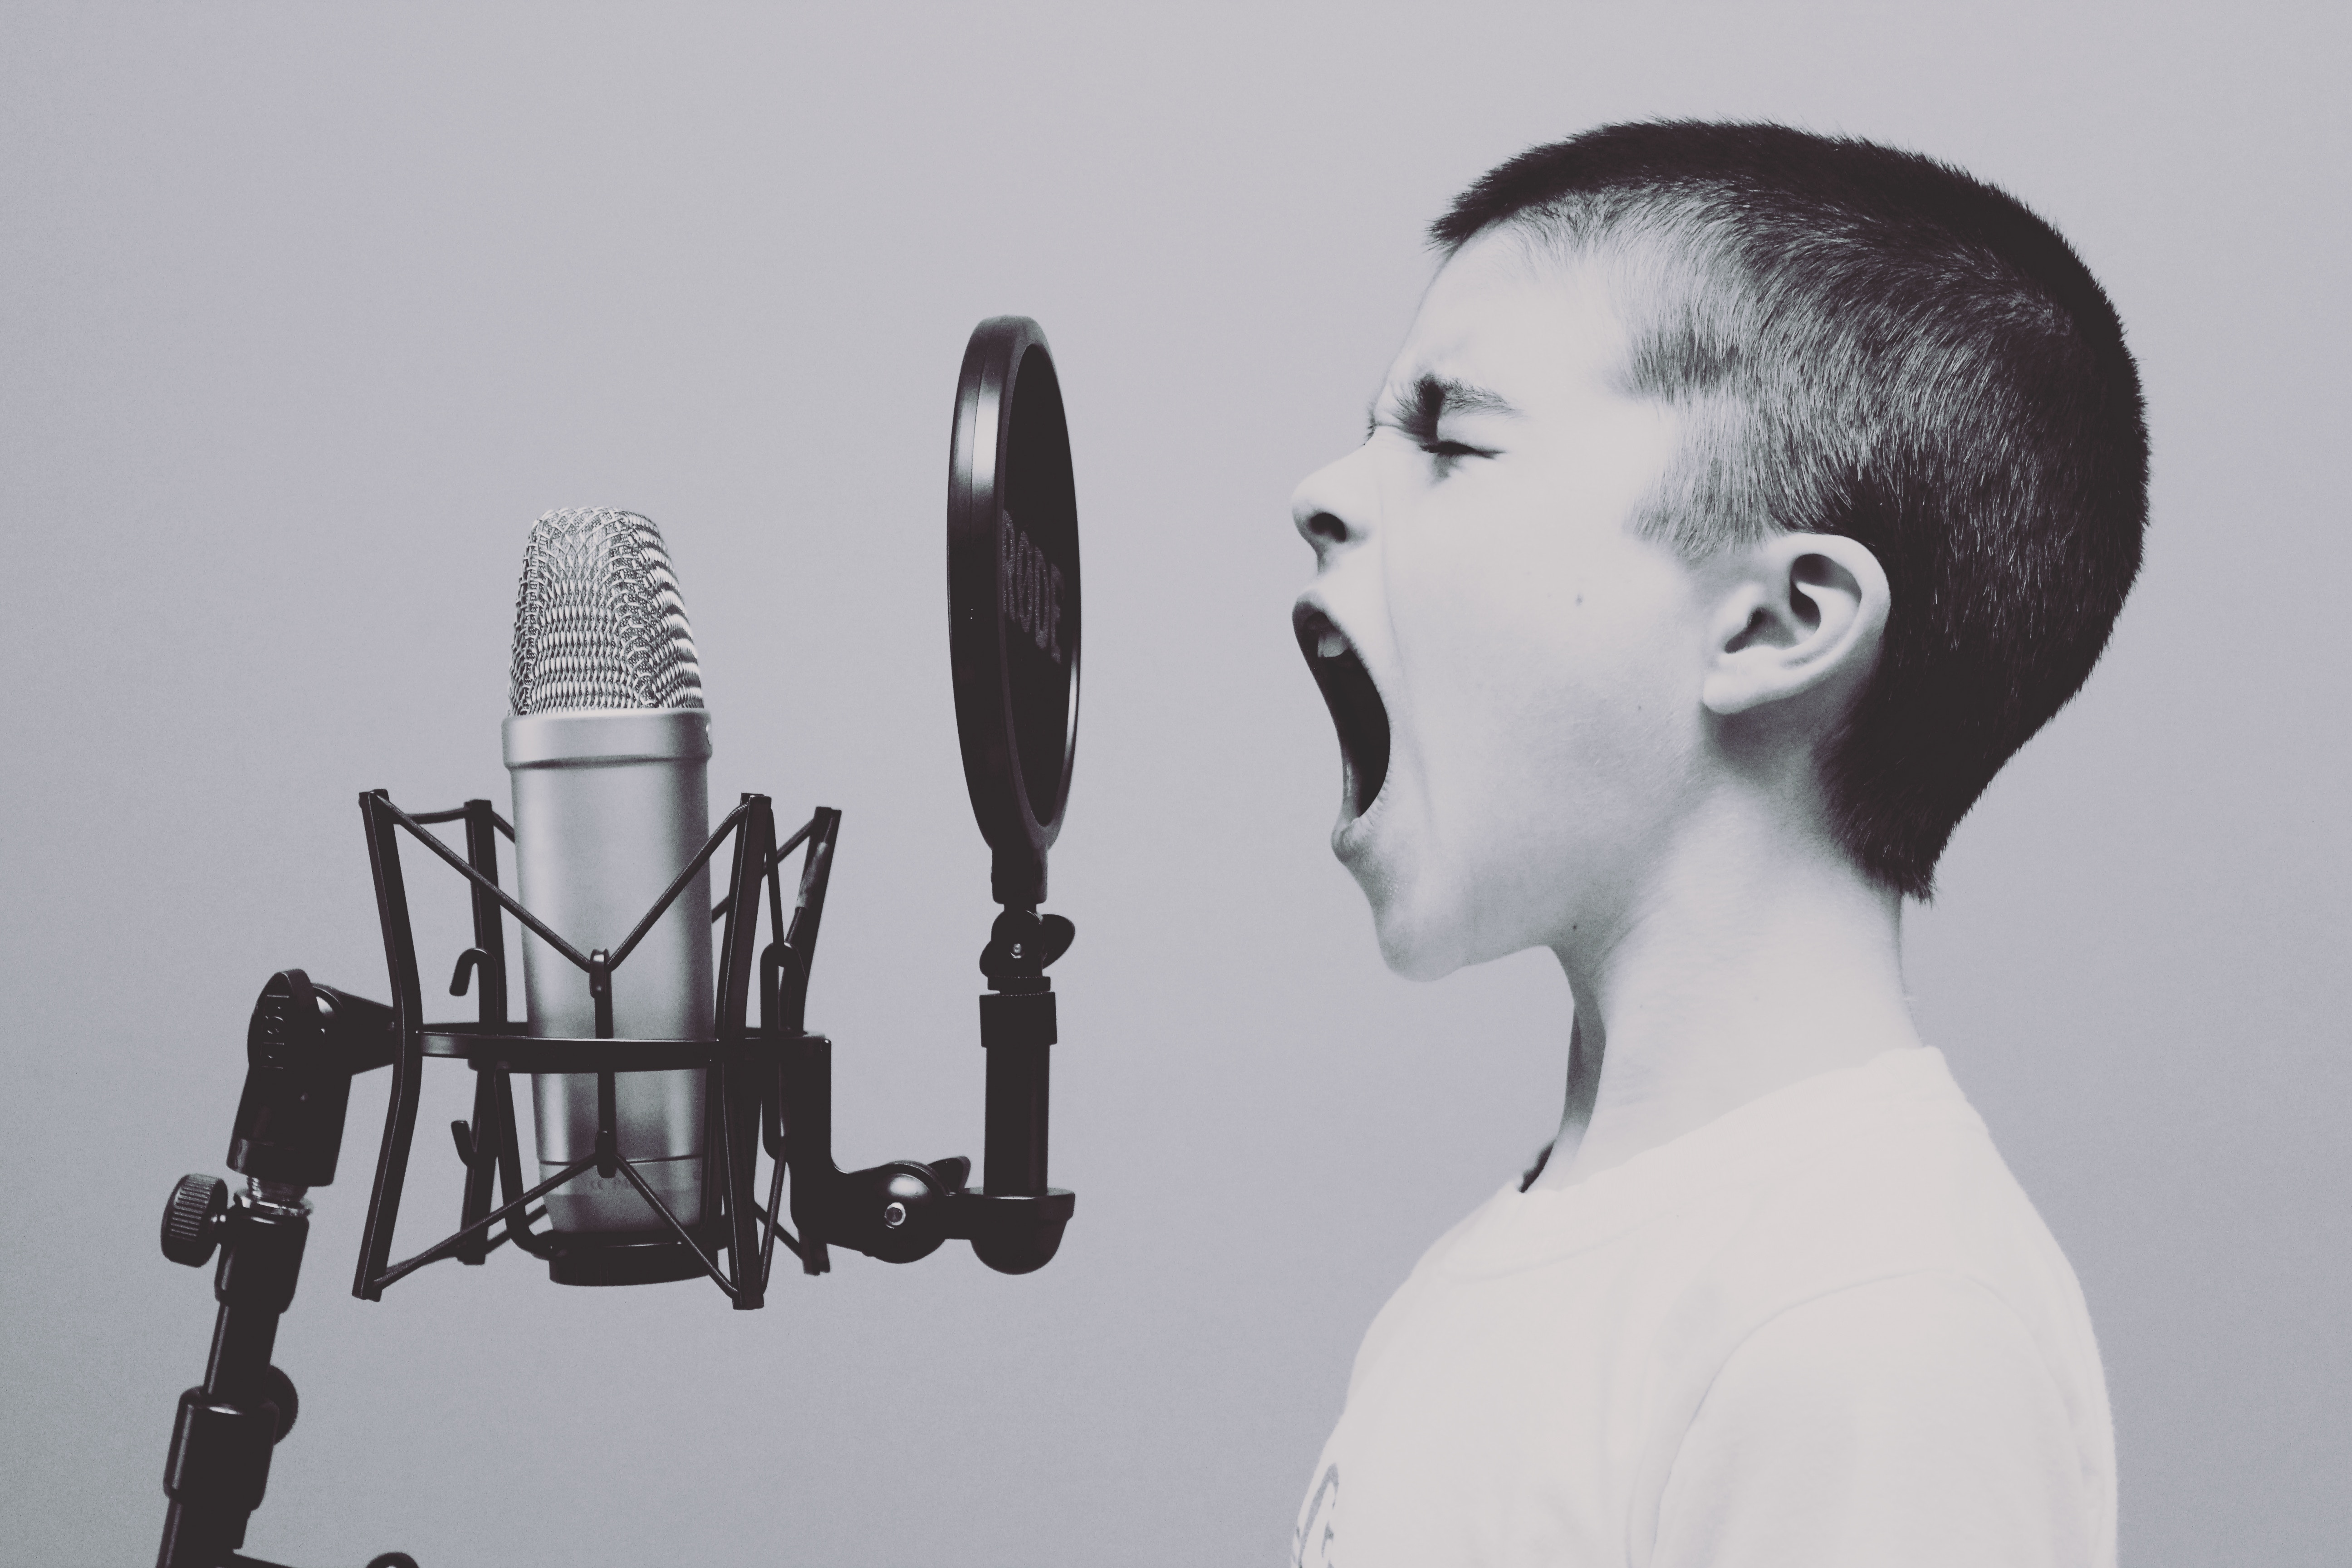 Speech to text uses AI to transcribe digital audio files